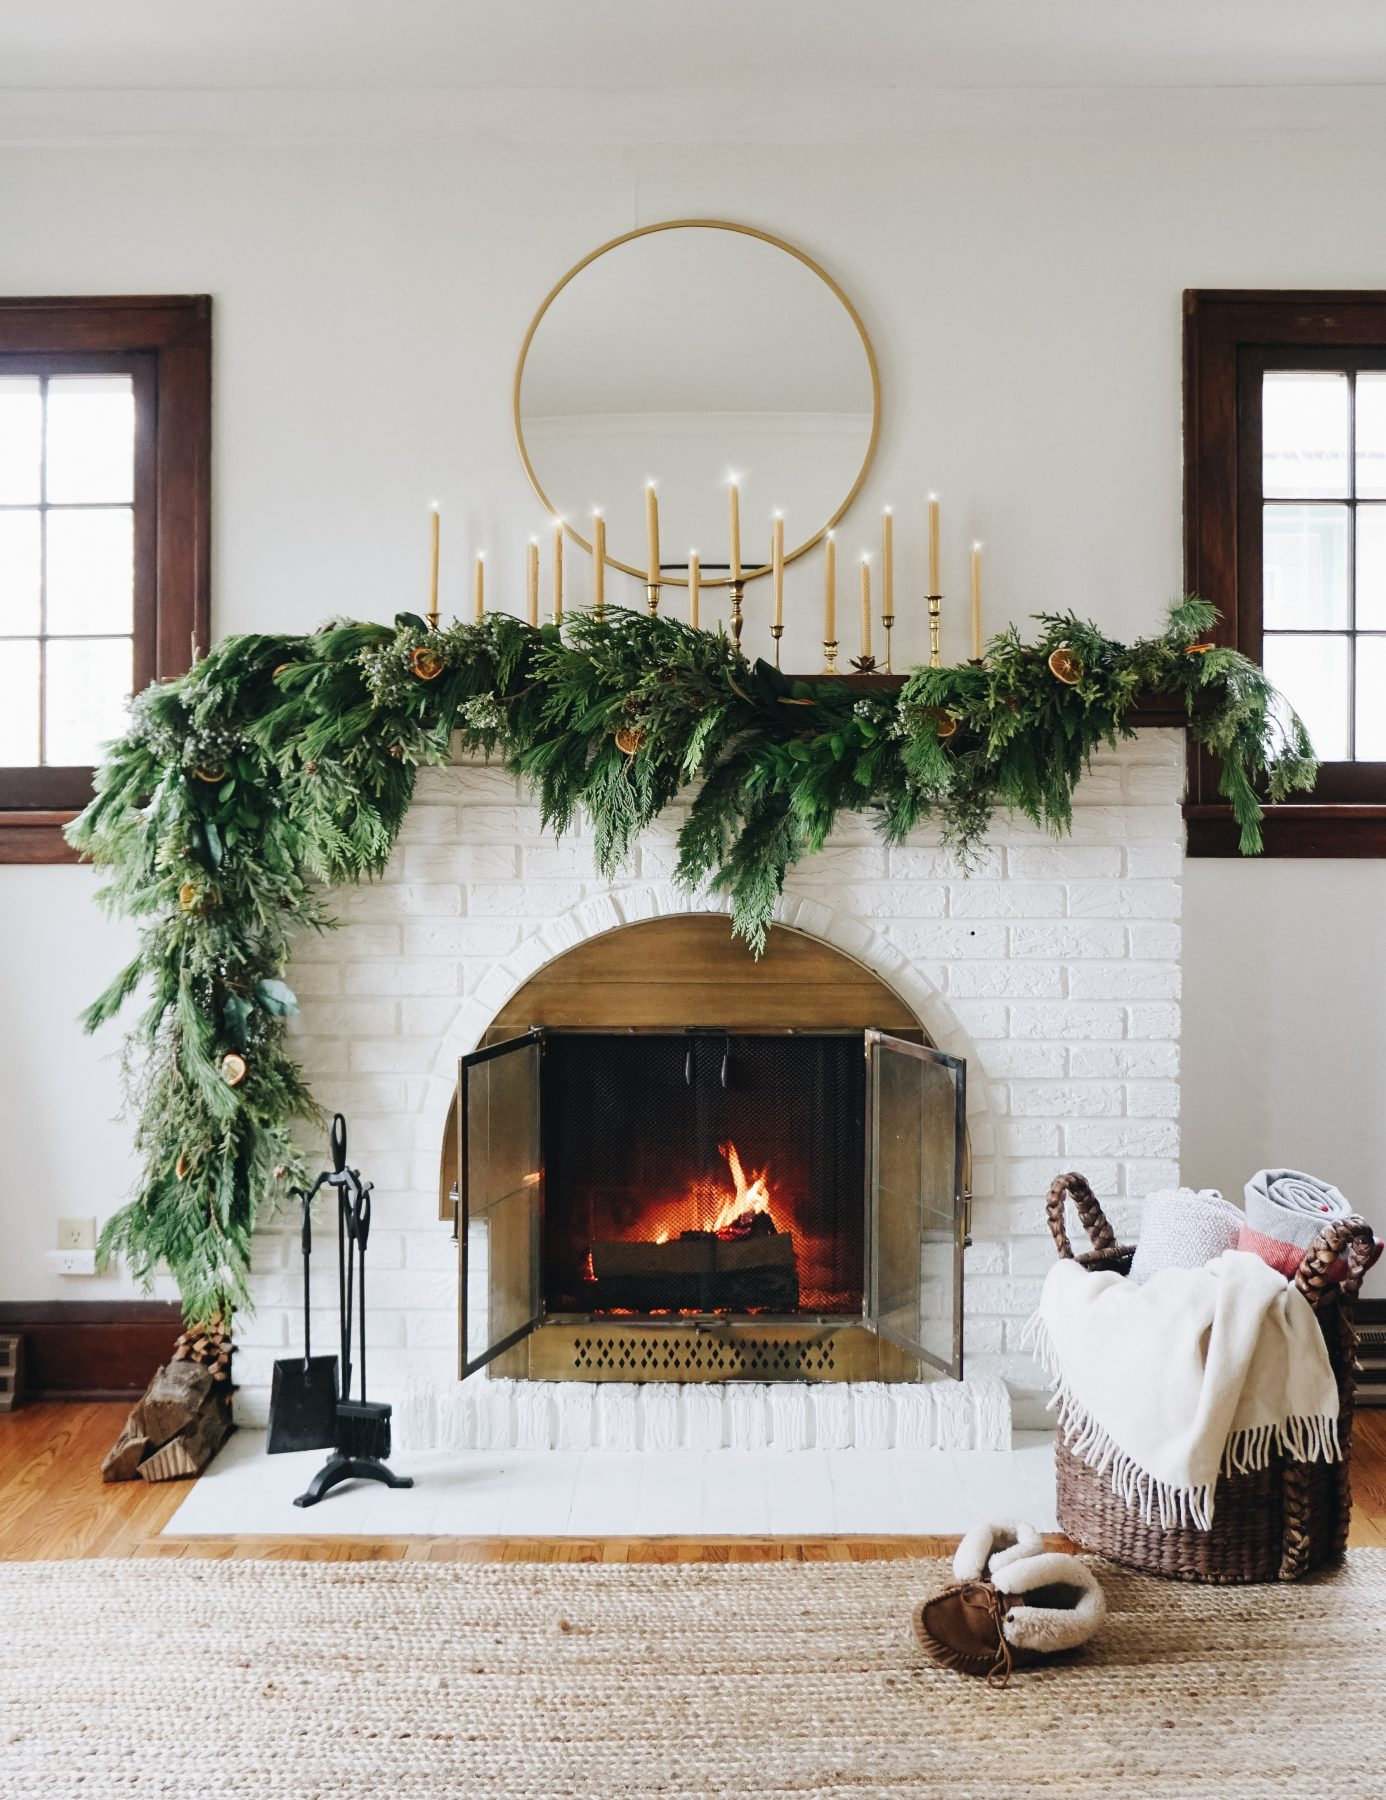 Sustainable Natural Christmas Decorations For A Hygge Home